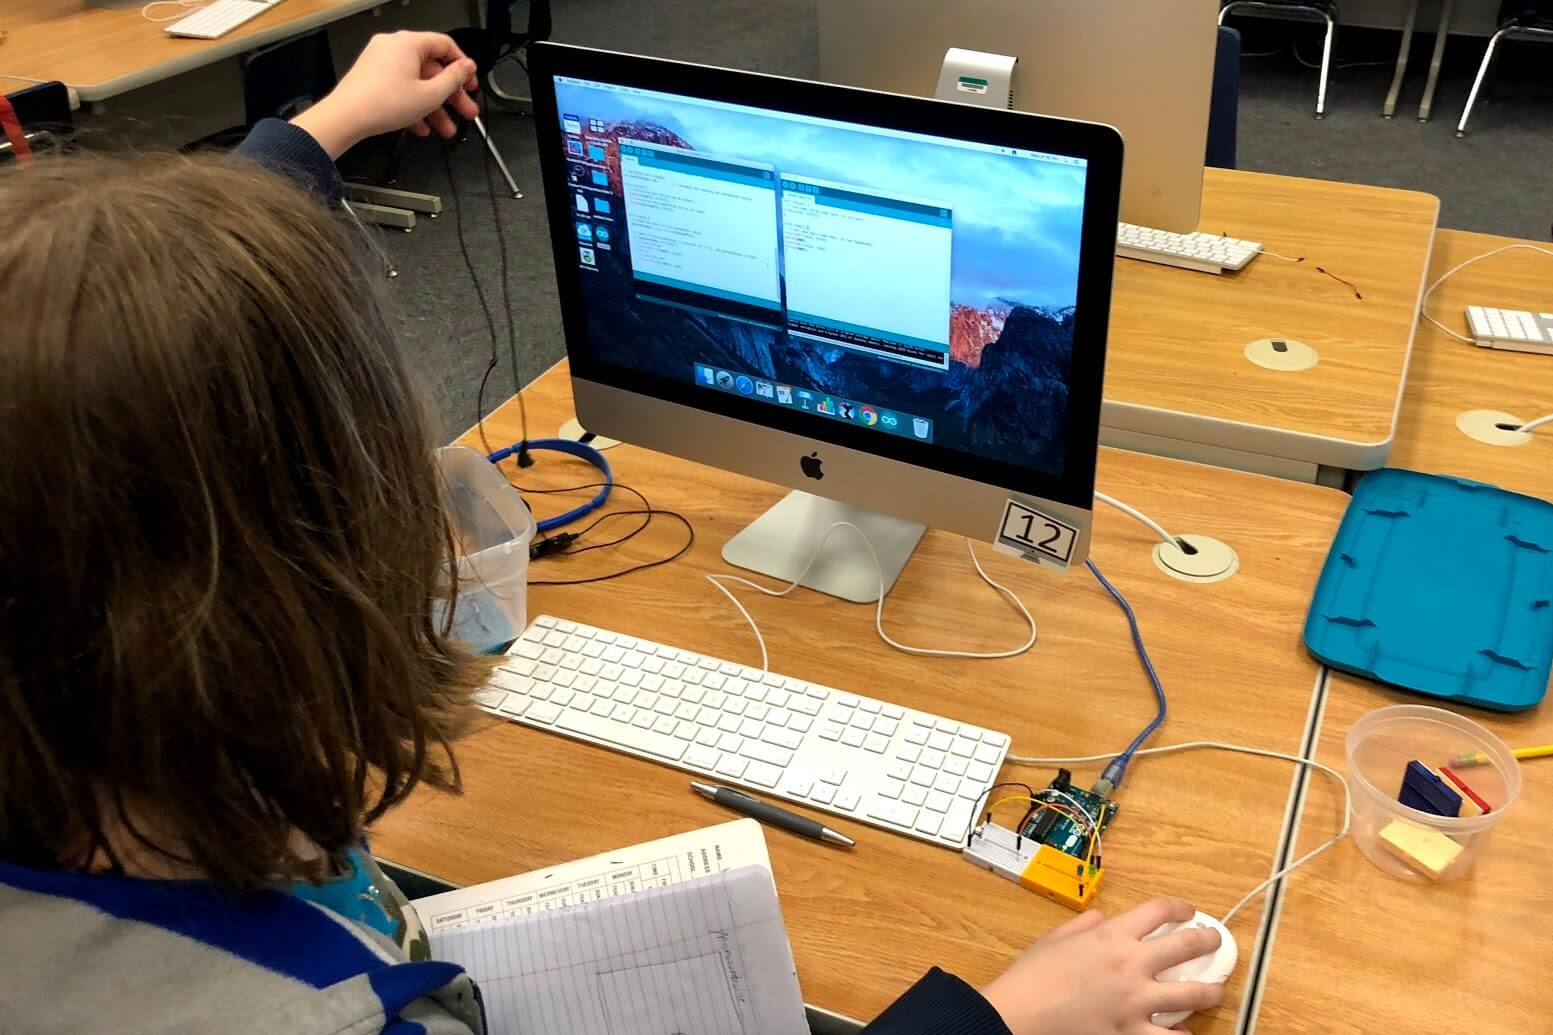 Ages 11-15 - STEM fundamentals are taught. Focused on understanding the principles of product design using technology.